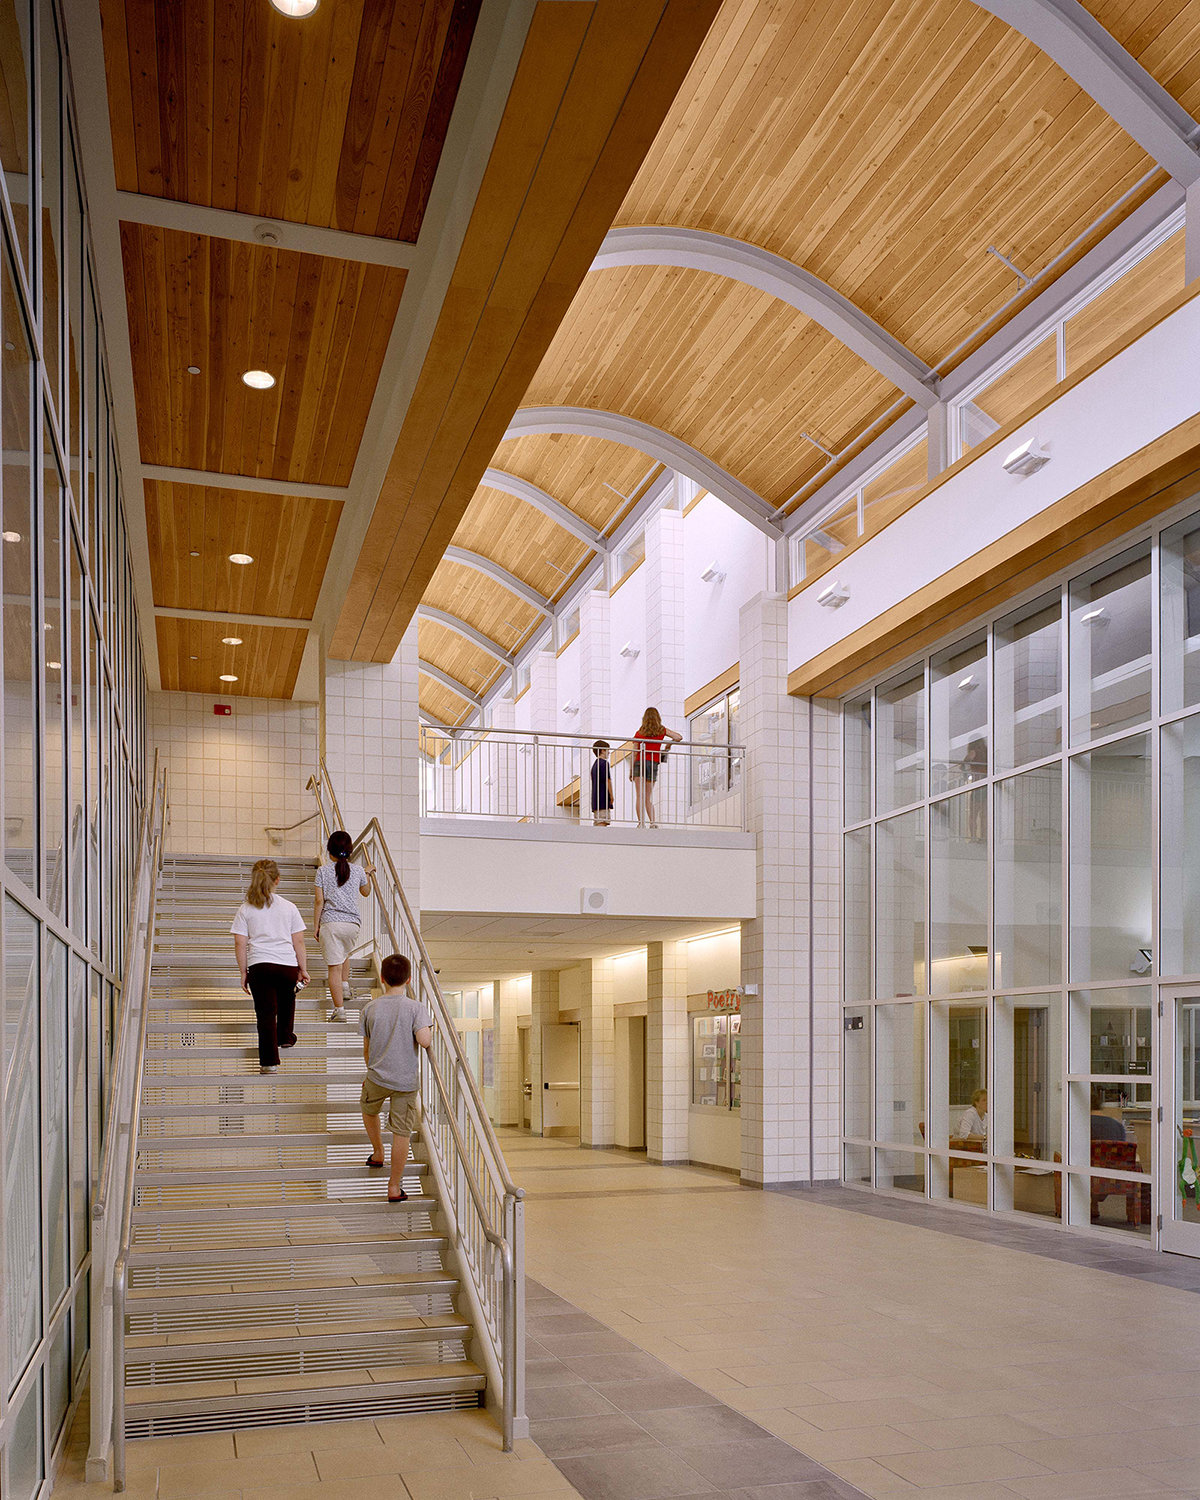 5 tskp fairfield mckinely elementary school interior detail windows lighting roof design 1400 0x0x1200x1500 q85